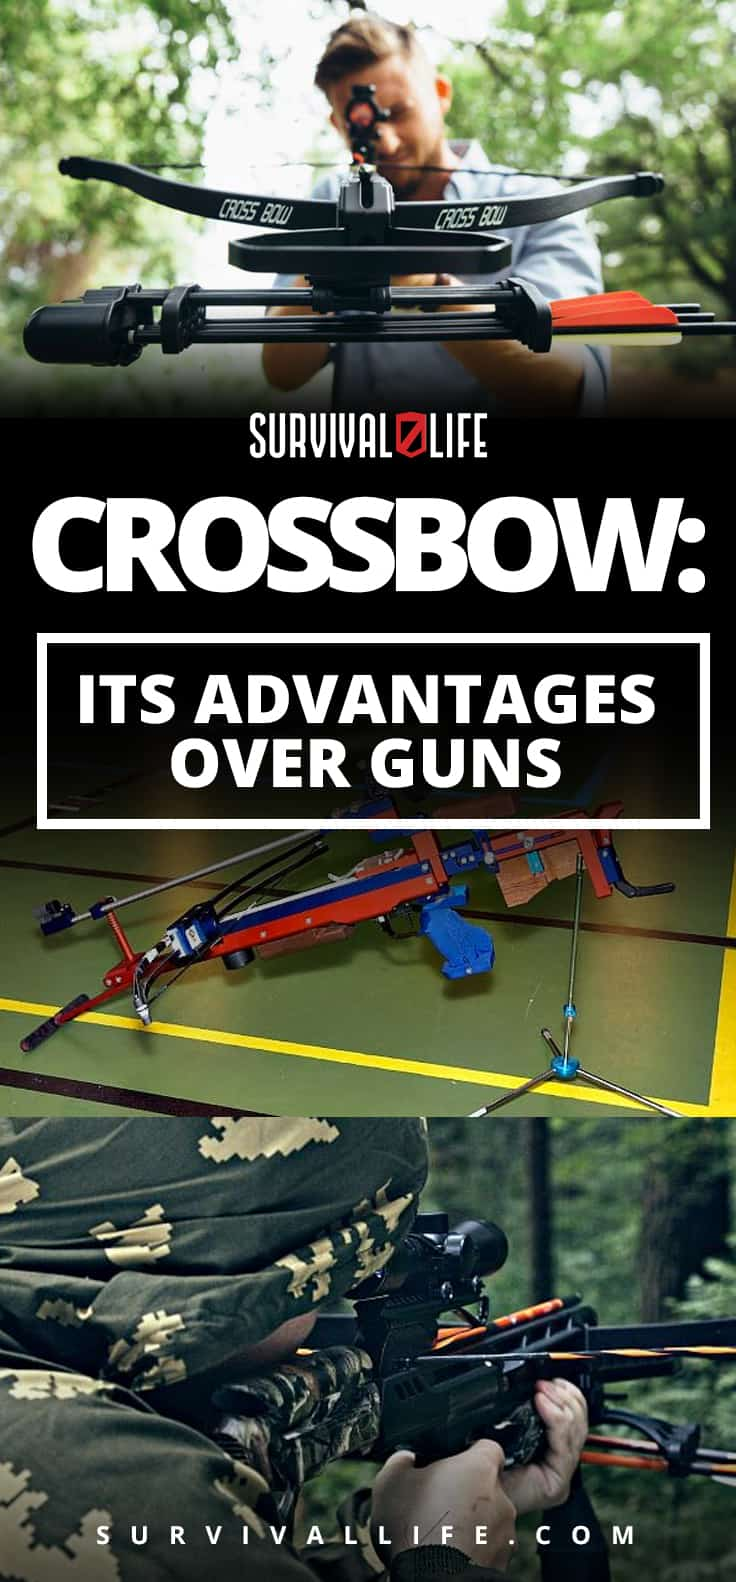 How To Use A Crossbow And Why Use It Over Guns | https://survivallife.com/how-use-crossbow/